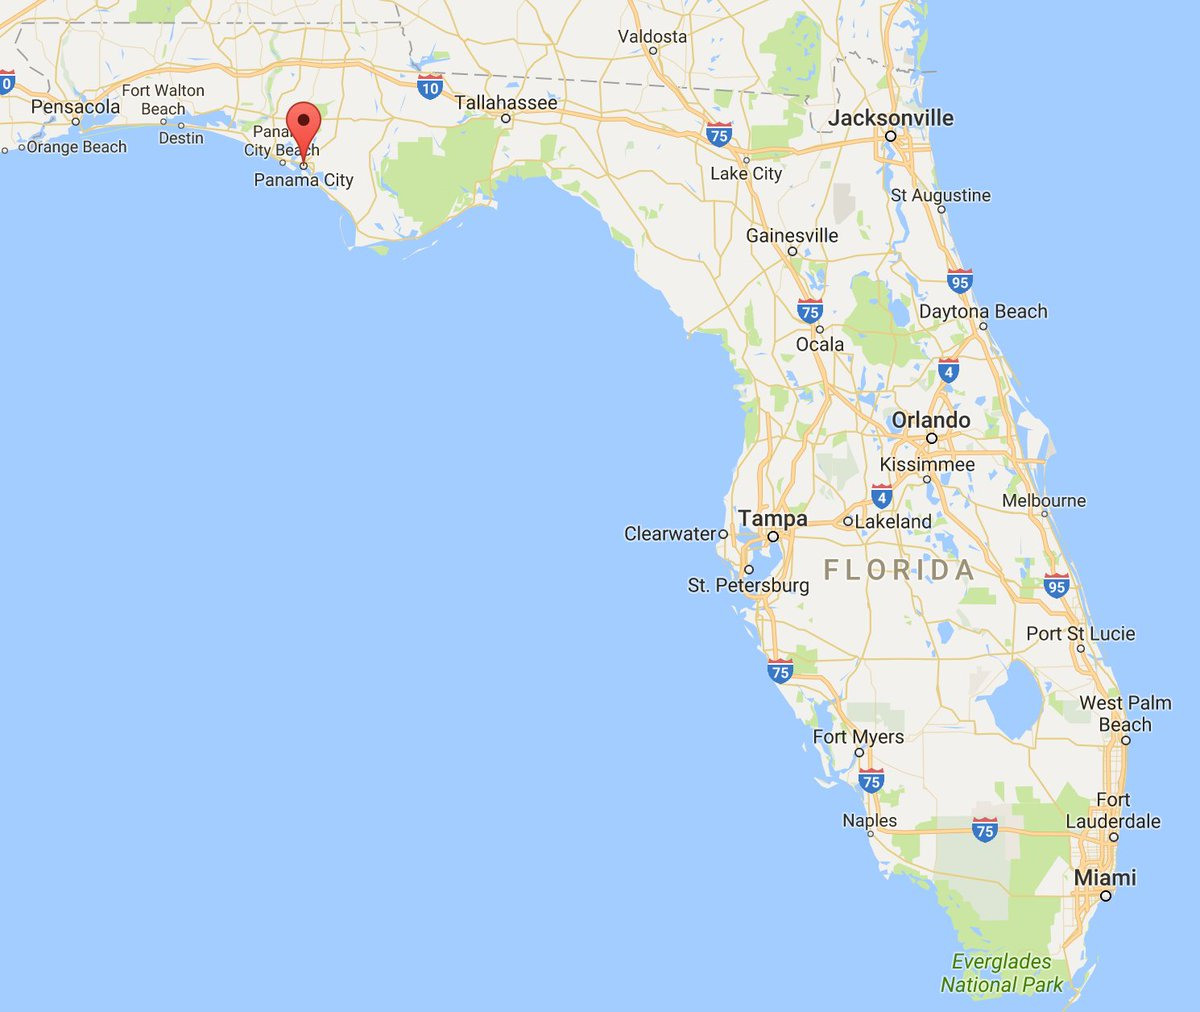 Bradd Jaffy On Twitter Whoever Wrote This Fl Speech For Trump He S Talked About Lake Okeechobee The Everglades Doral Cuba Mar A Lago